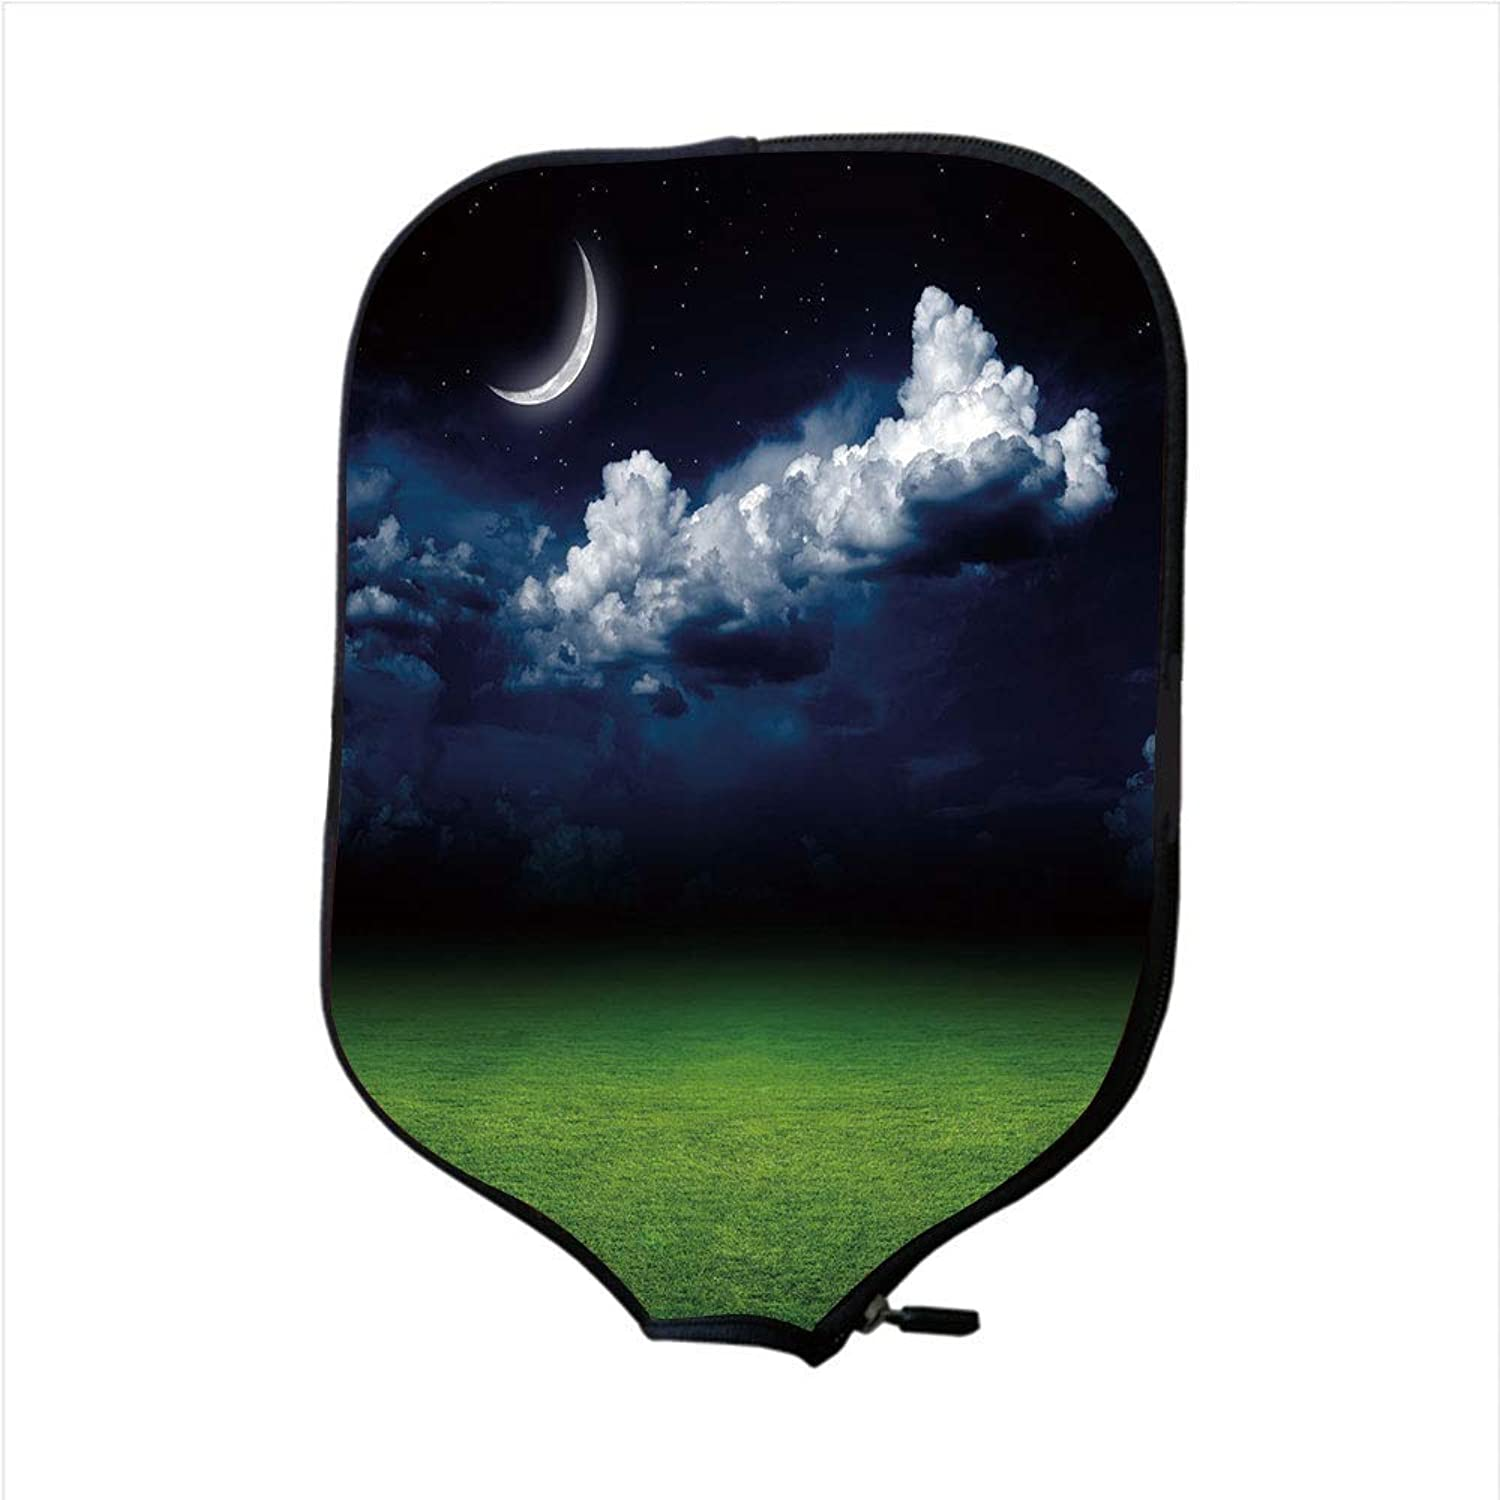 Fine Neoprene Pickleball Paddle Racket Cover Case,Night,Green Grass Landscape and Fluffy White Clouds Mystical Idyllic Lunar View Decorative,Green Indigo White,Fit for Most Rackets